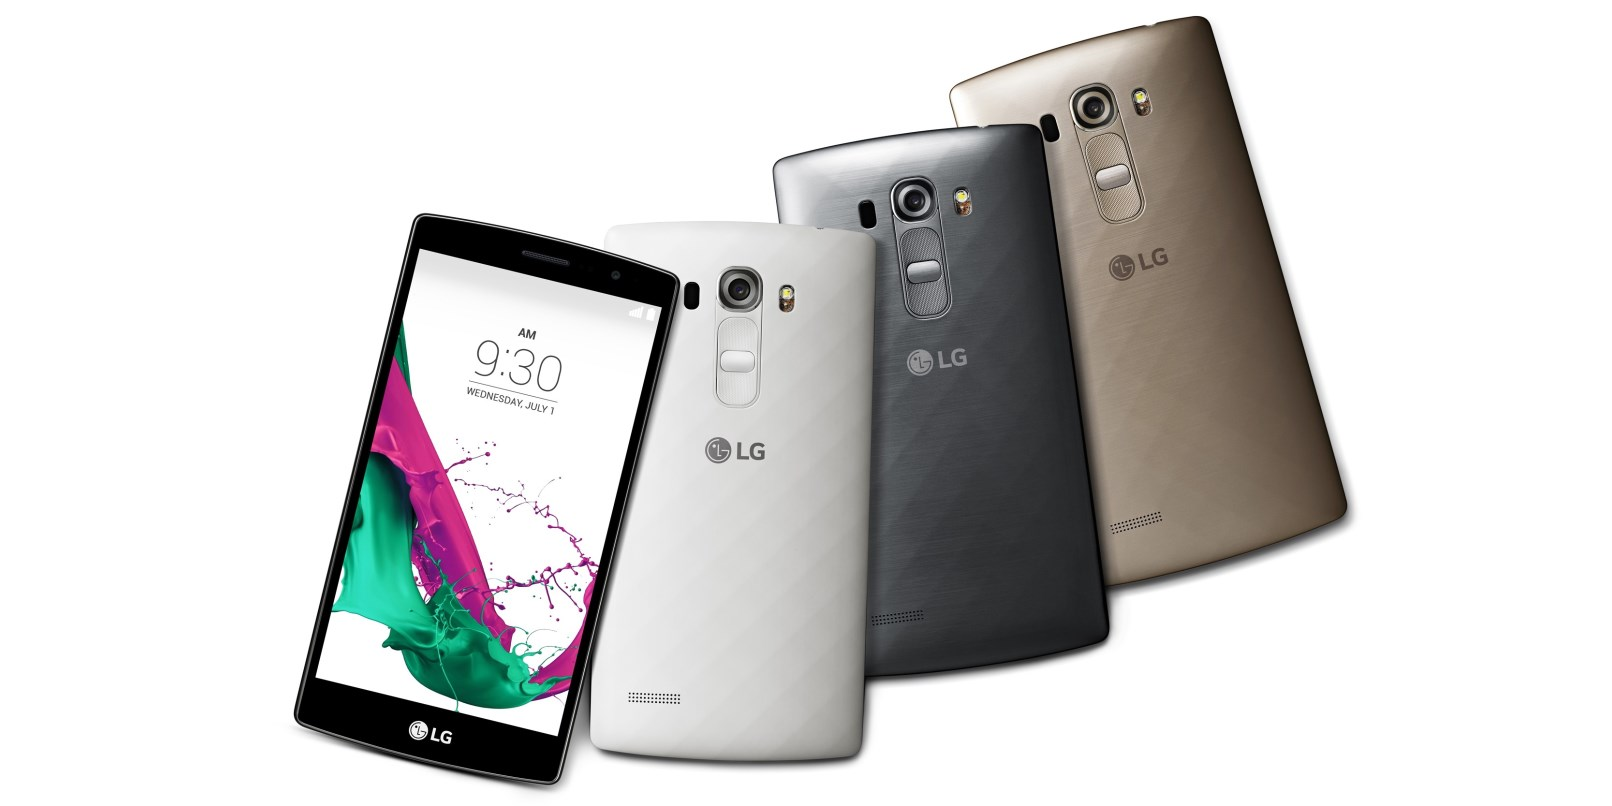 LG introduces the G4 Beat, a cheaper version of its G4 flagship